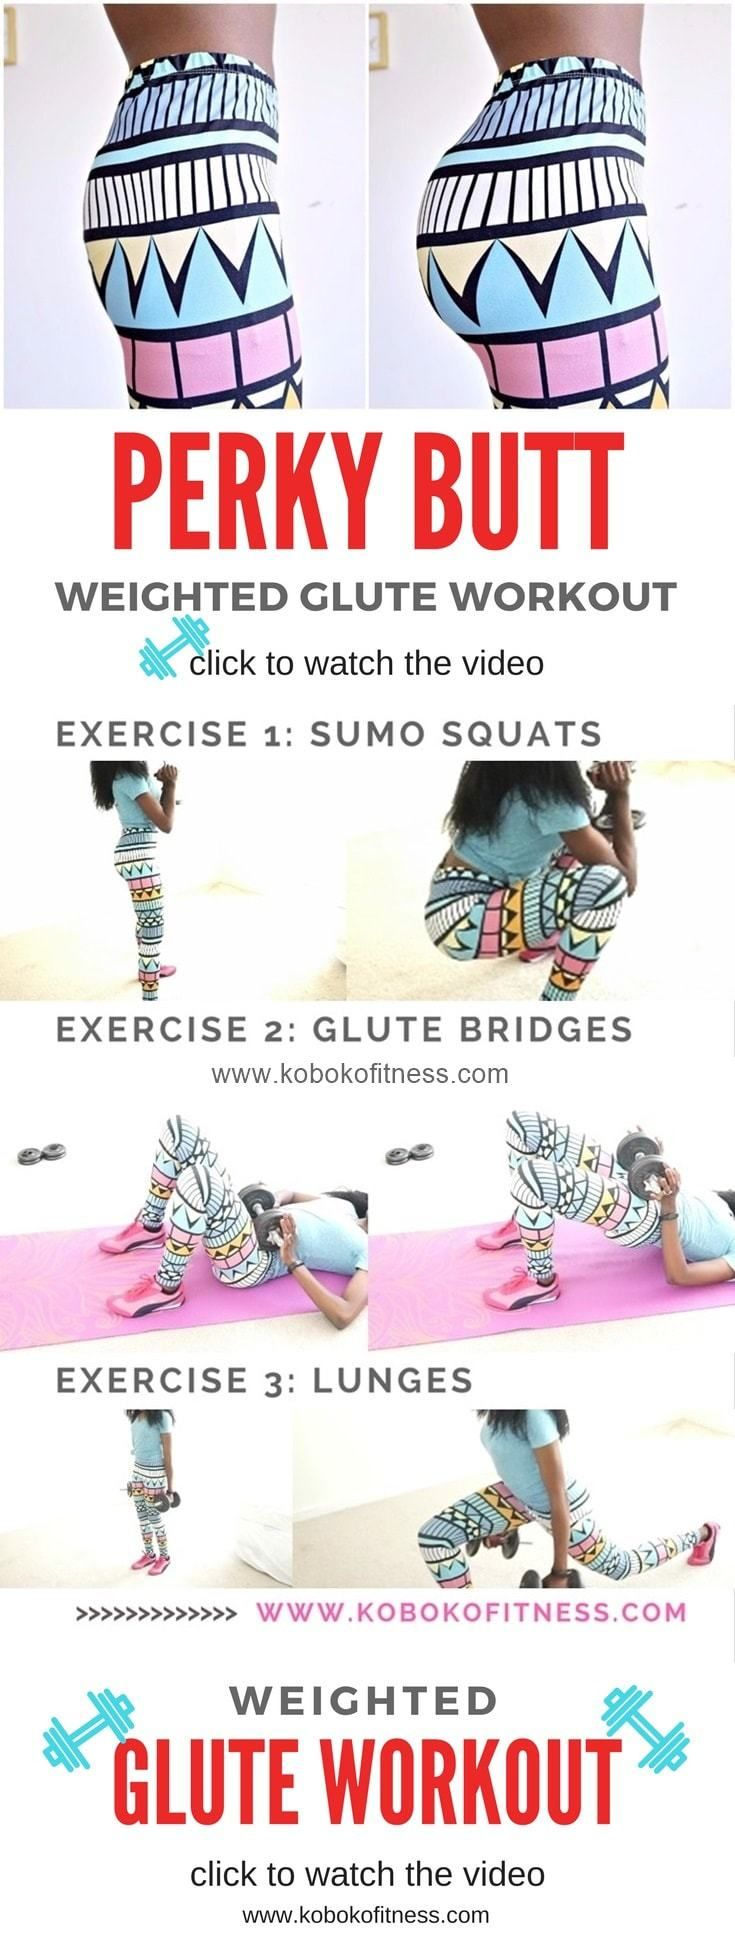 You really get amazing results from this weighted glute workout. bigger butt, here i come